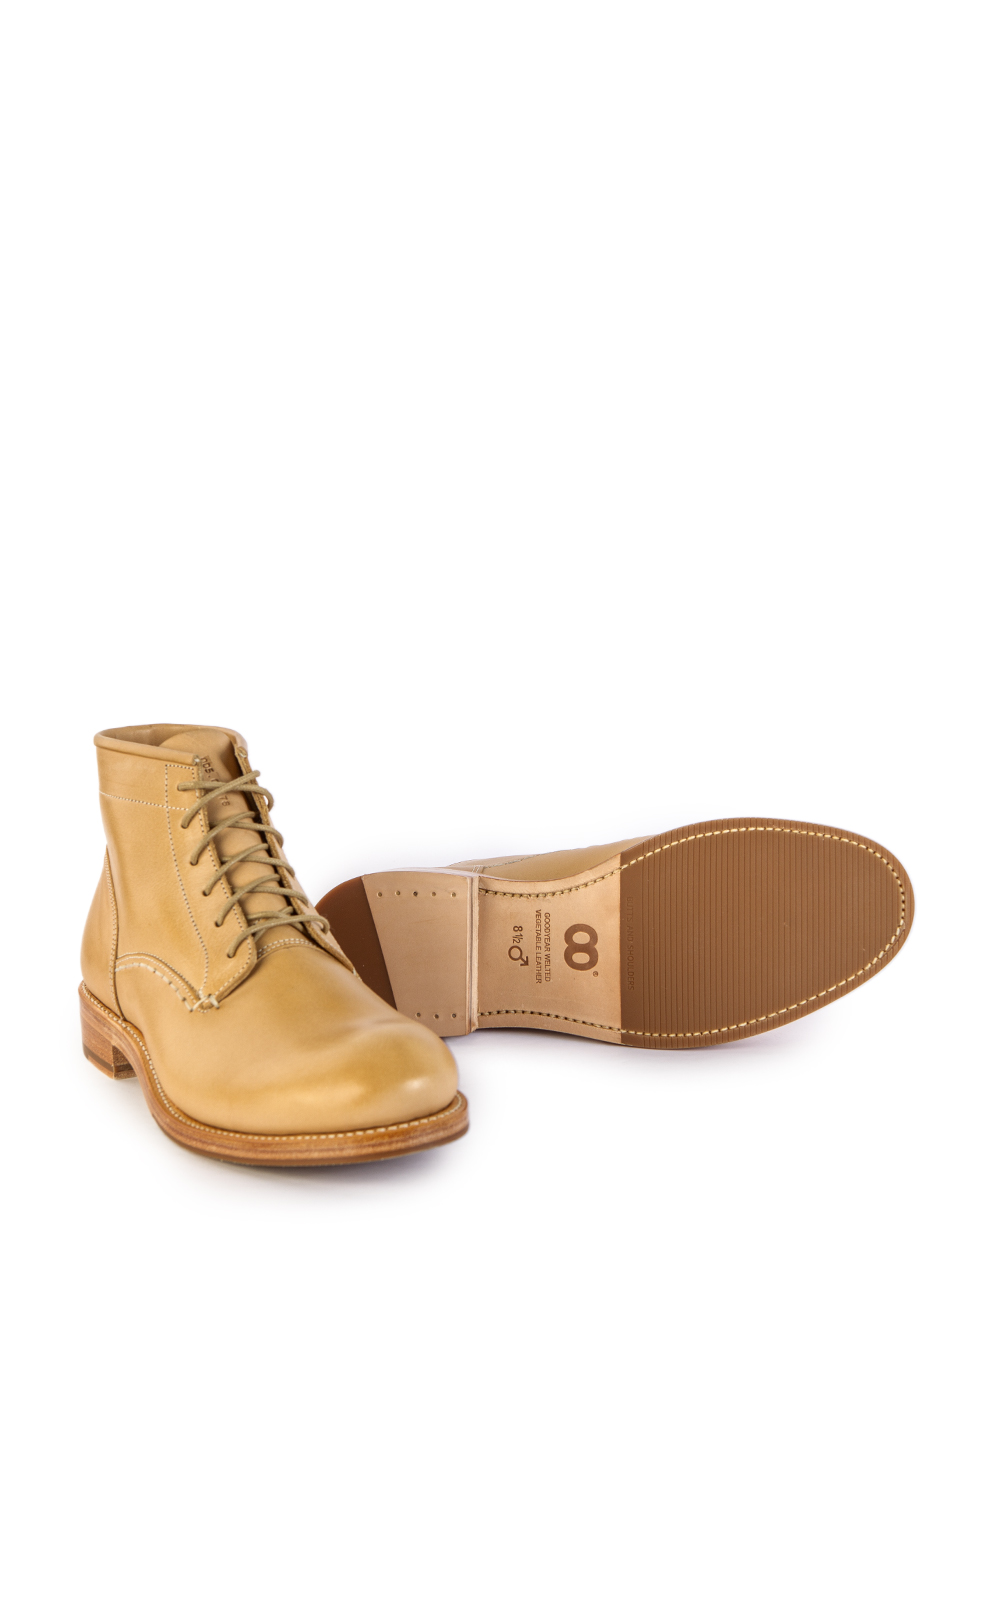 The Natural Boots